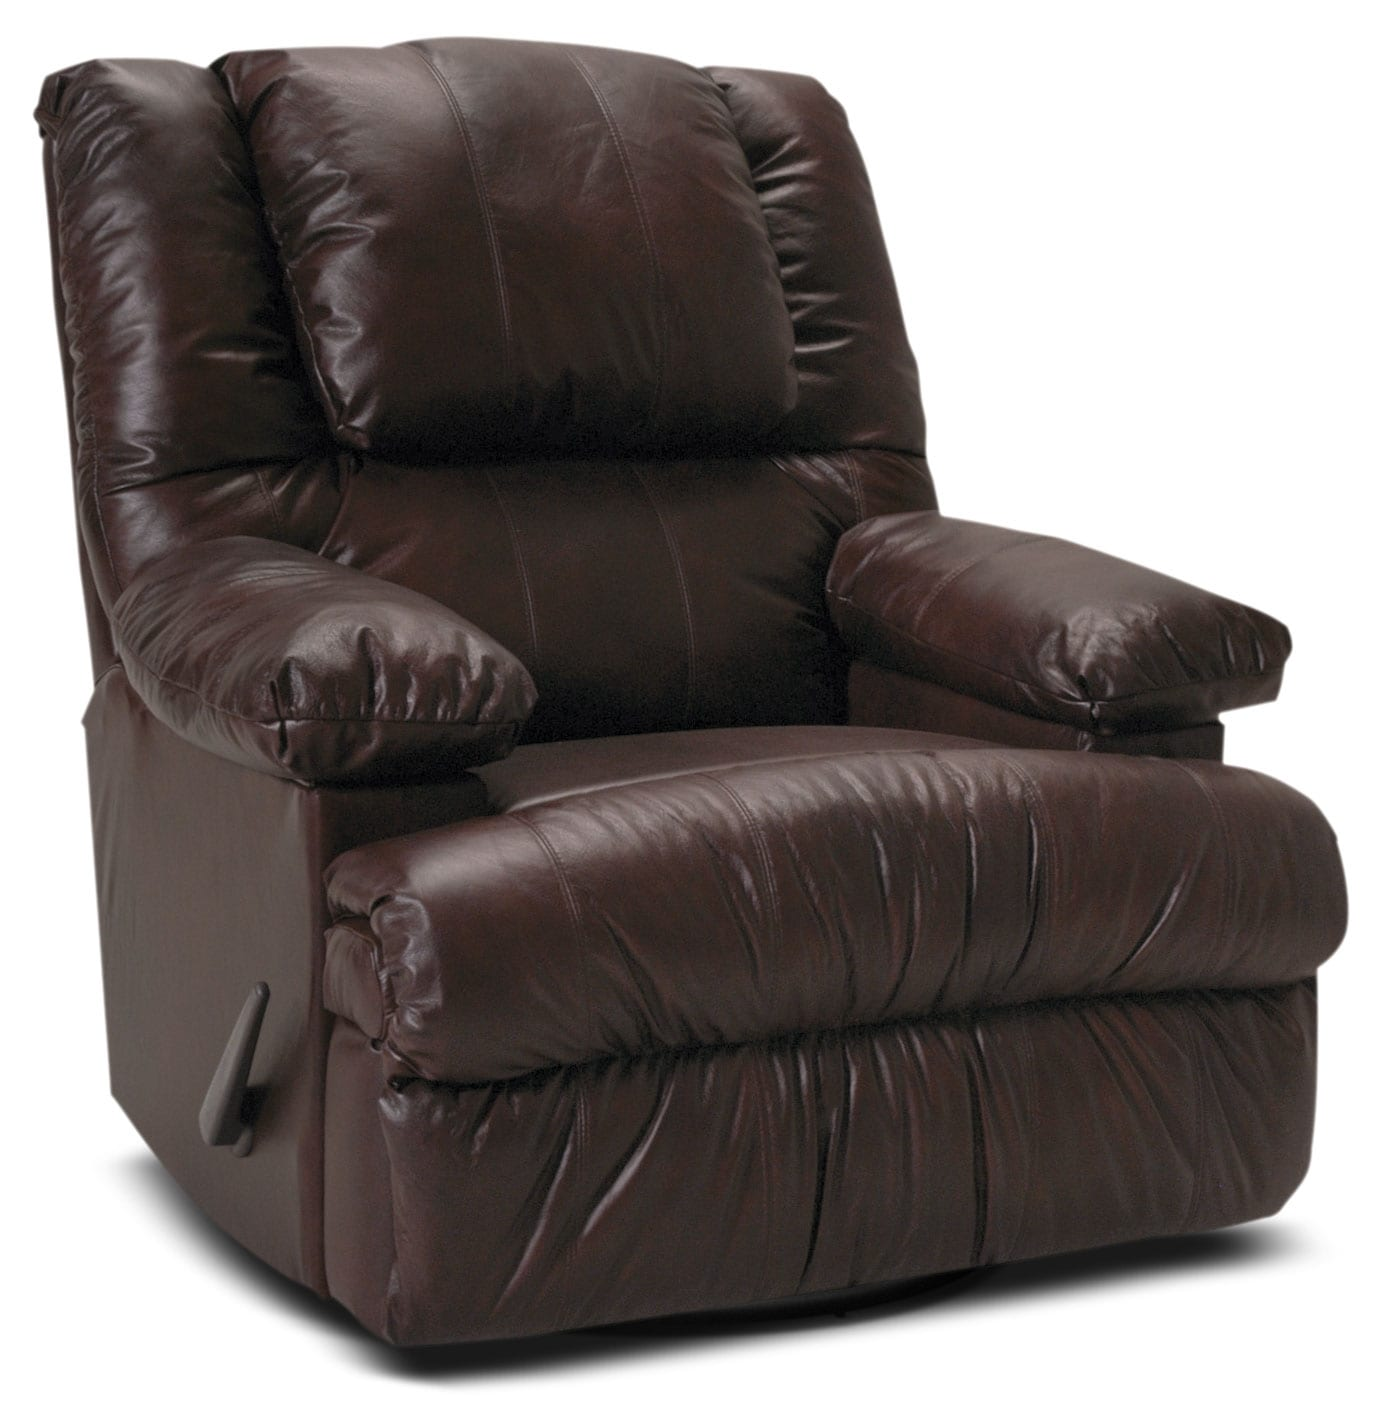 Living Room Furniture - Designed2B Recliner 5598 Bonded Leather Swivel Rocker with Storage Arms - Java